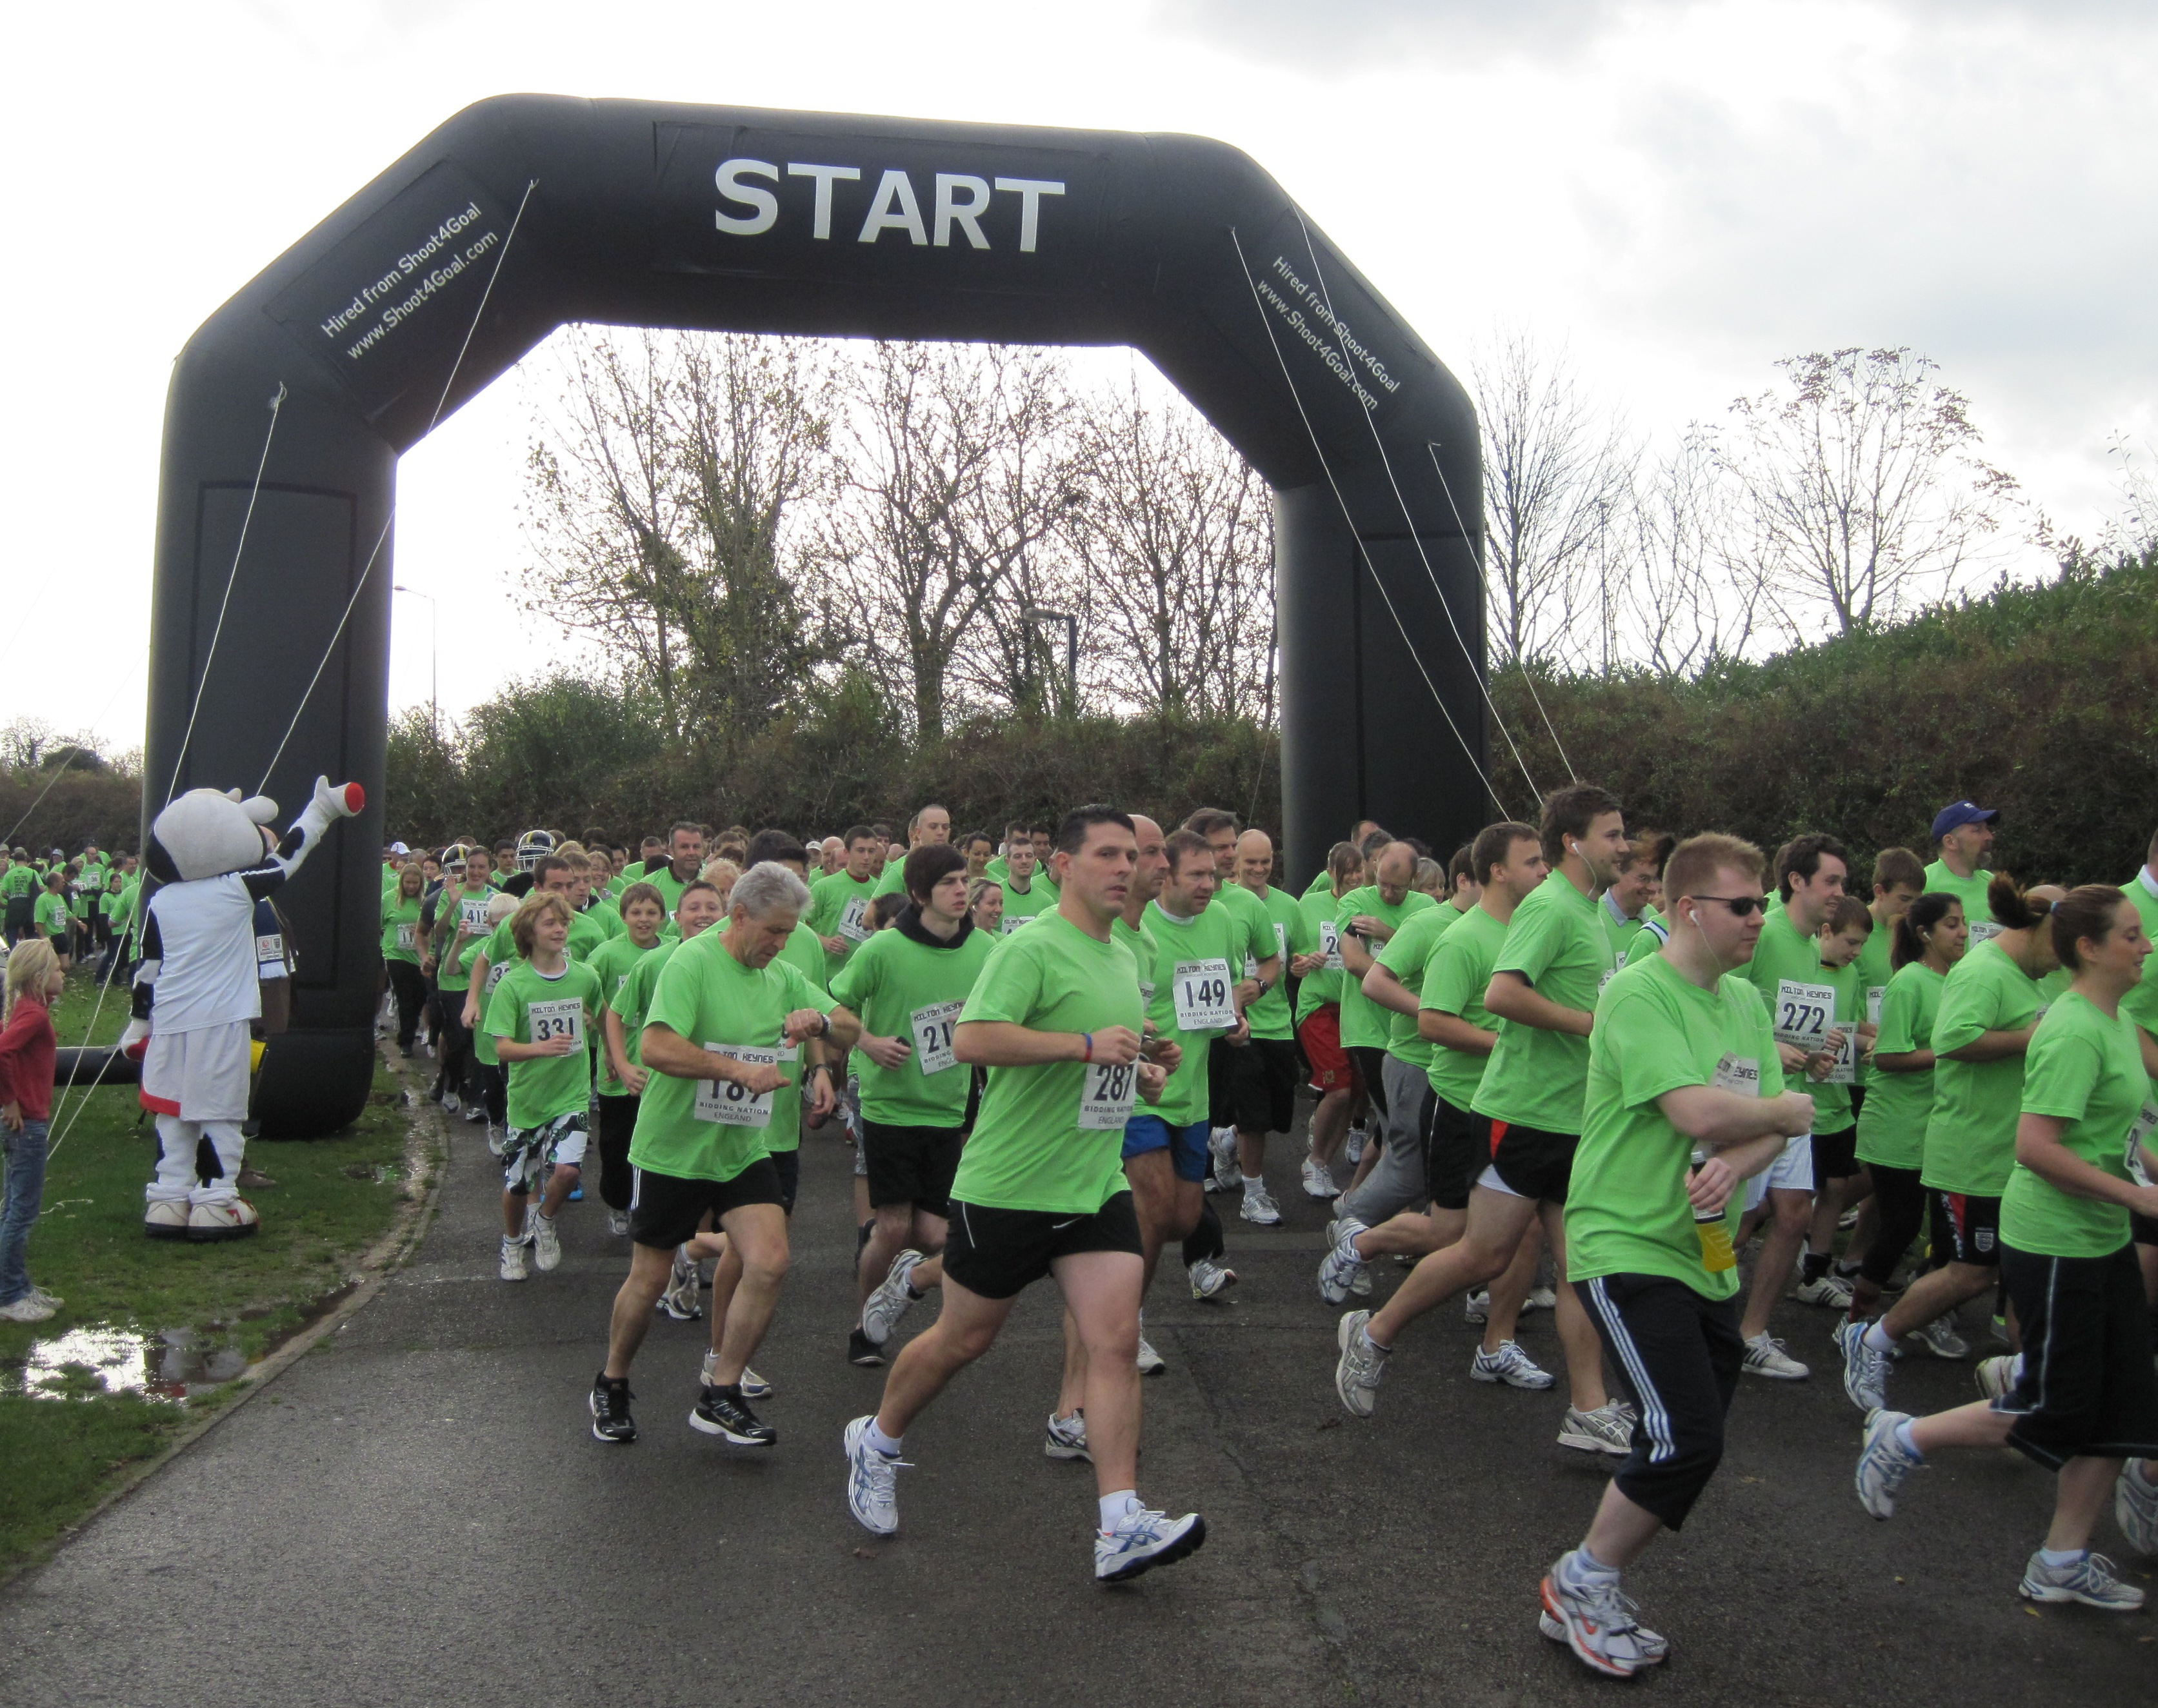 start    finish line arch - race event services